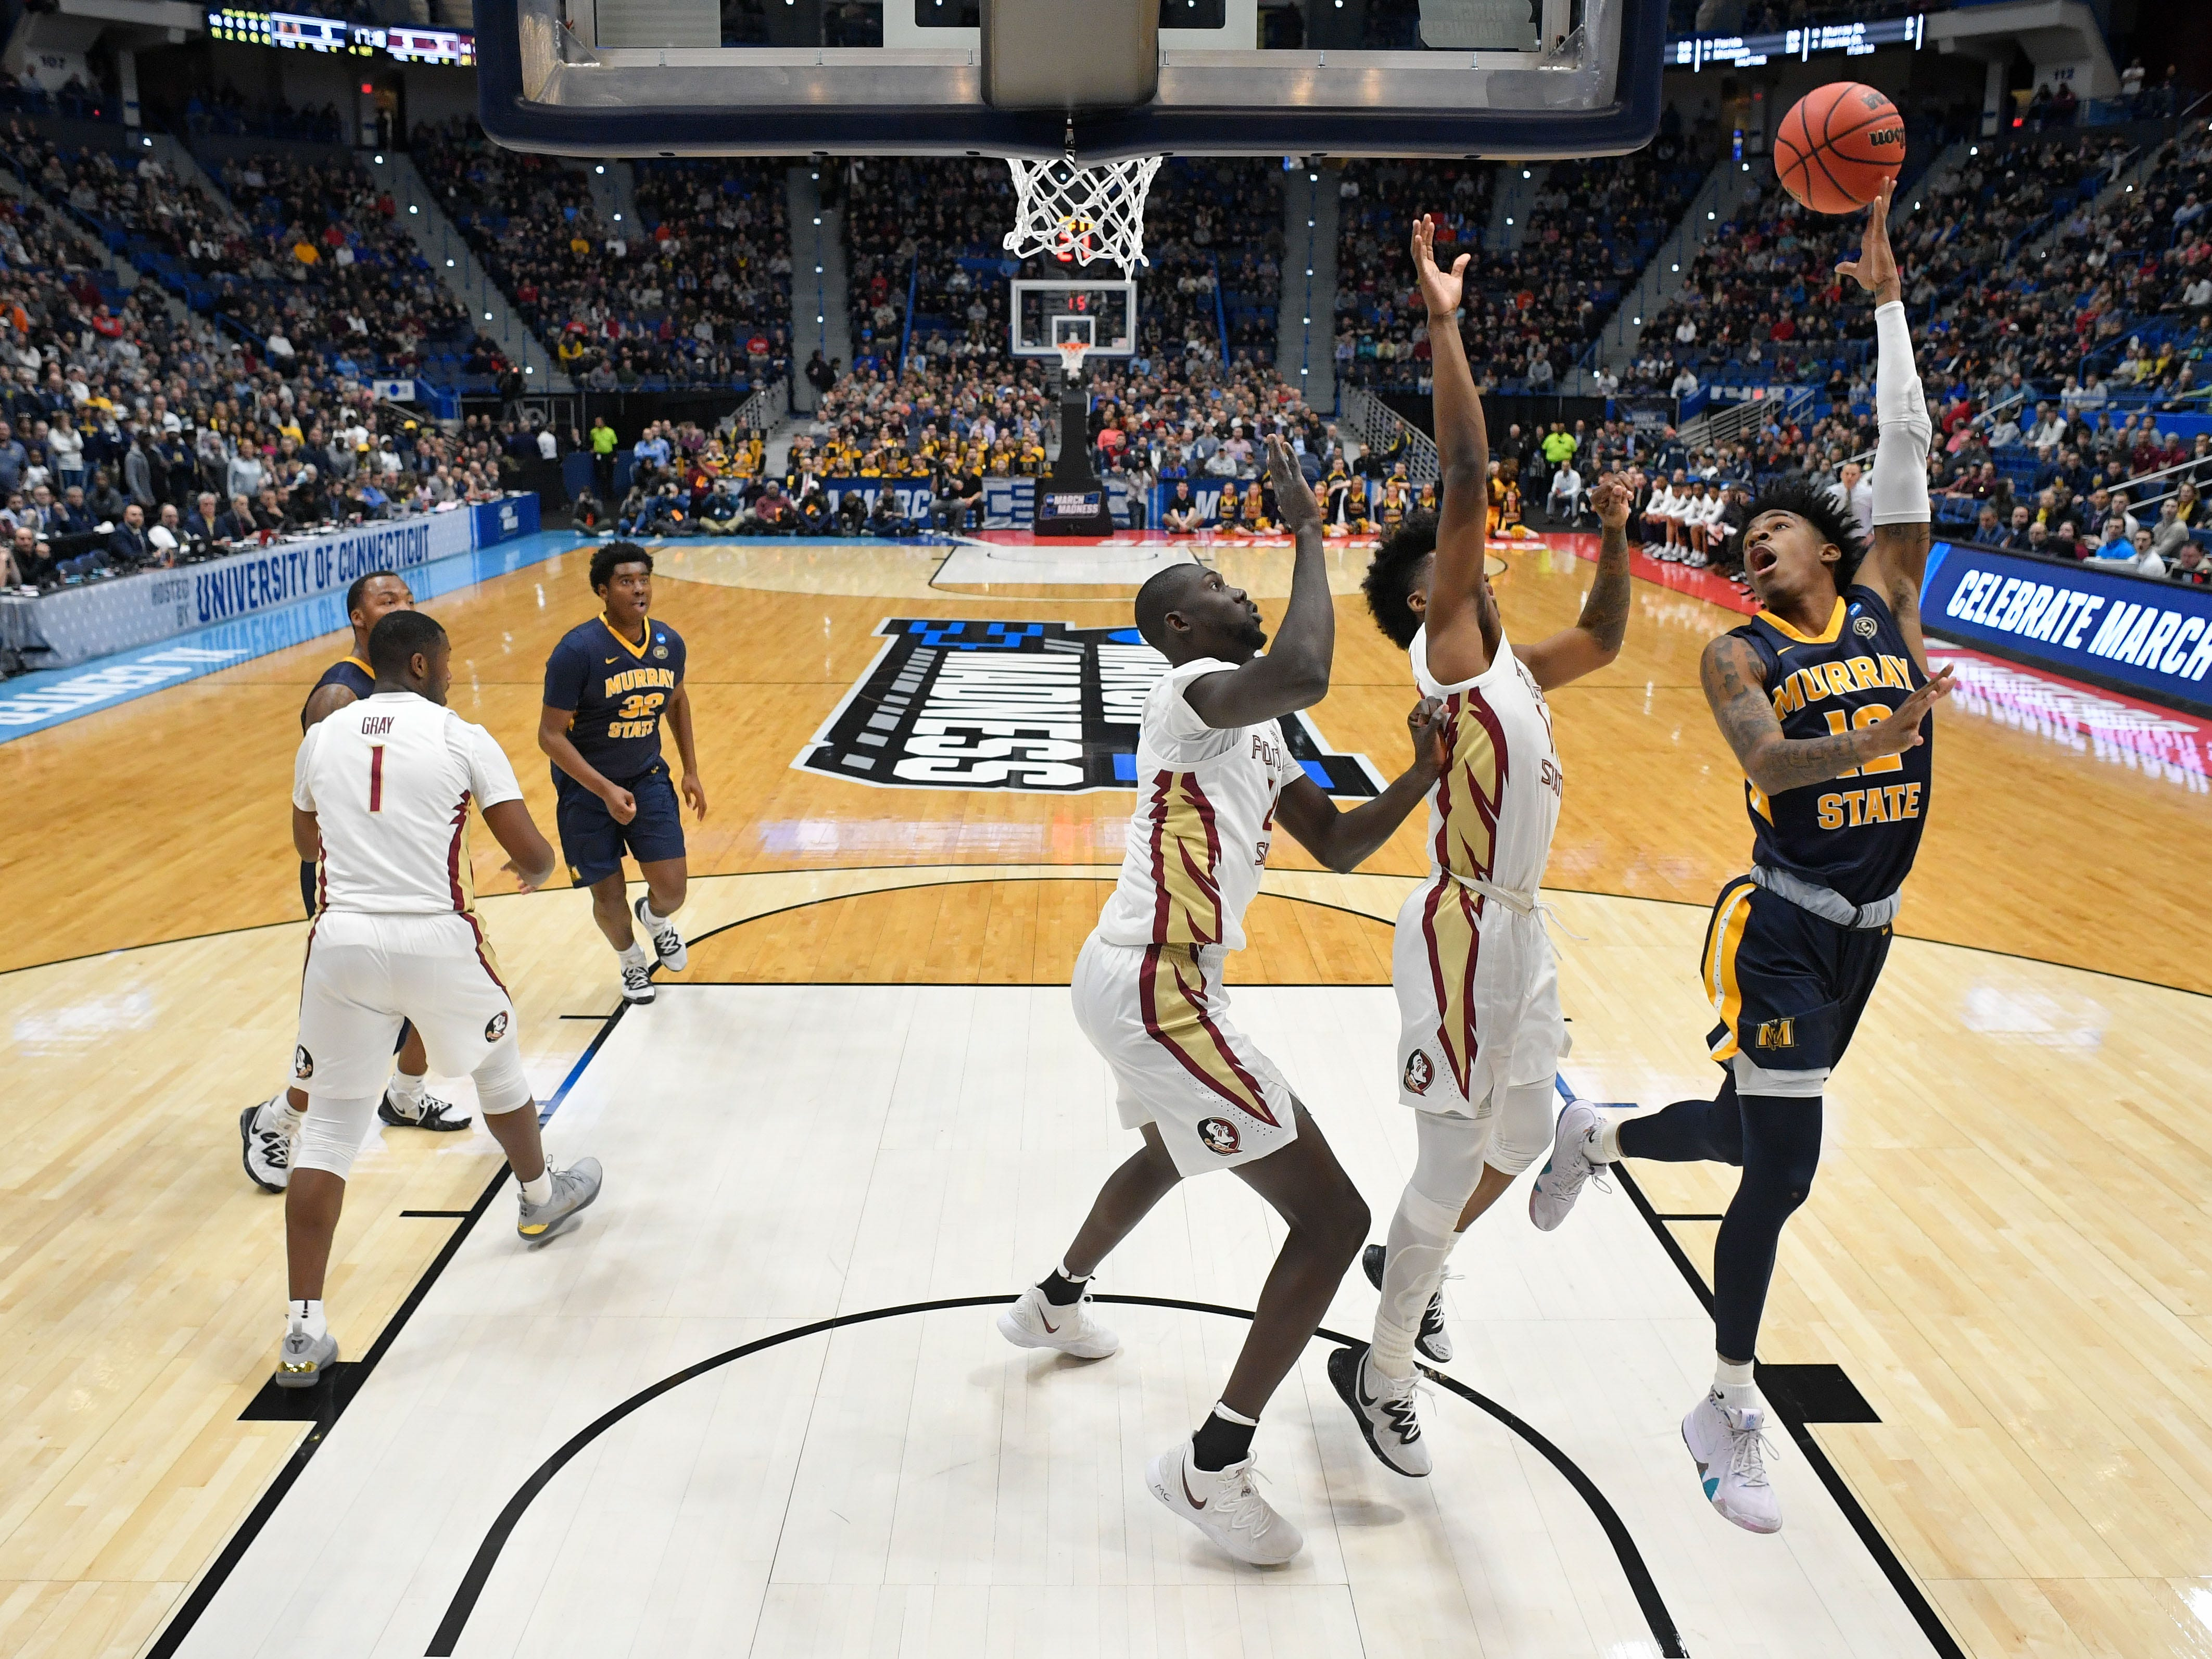 Mar 23, 2019; Hartford, CT, USA; Murray State Racers guard Ja Morant (12) attempts a layup against the Florida State Seminoles during the first half of a game in the second round of the 2019 NCAA Tournament at XL Center. Mandatory Credit: David Butler II-USA TODAY Sports